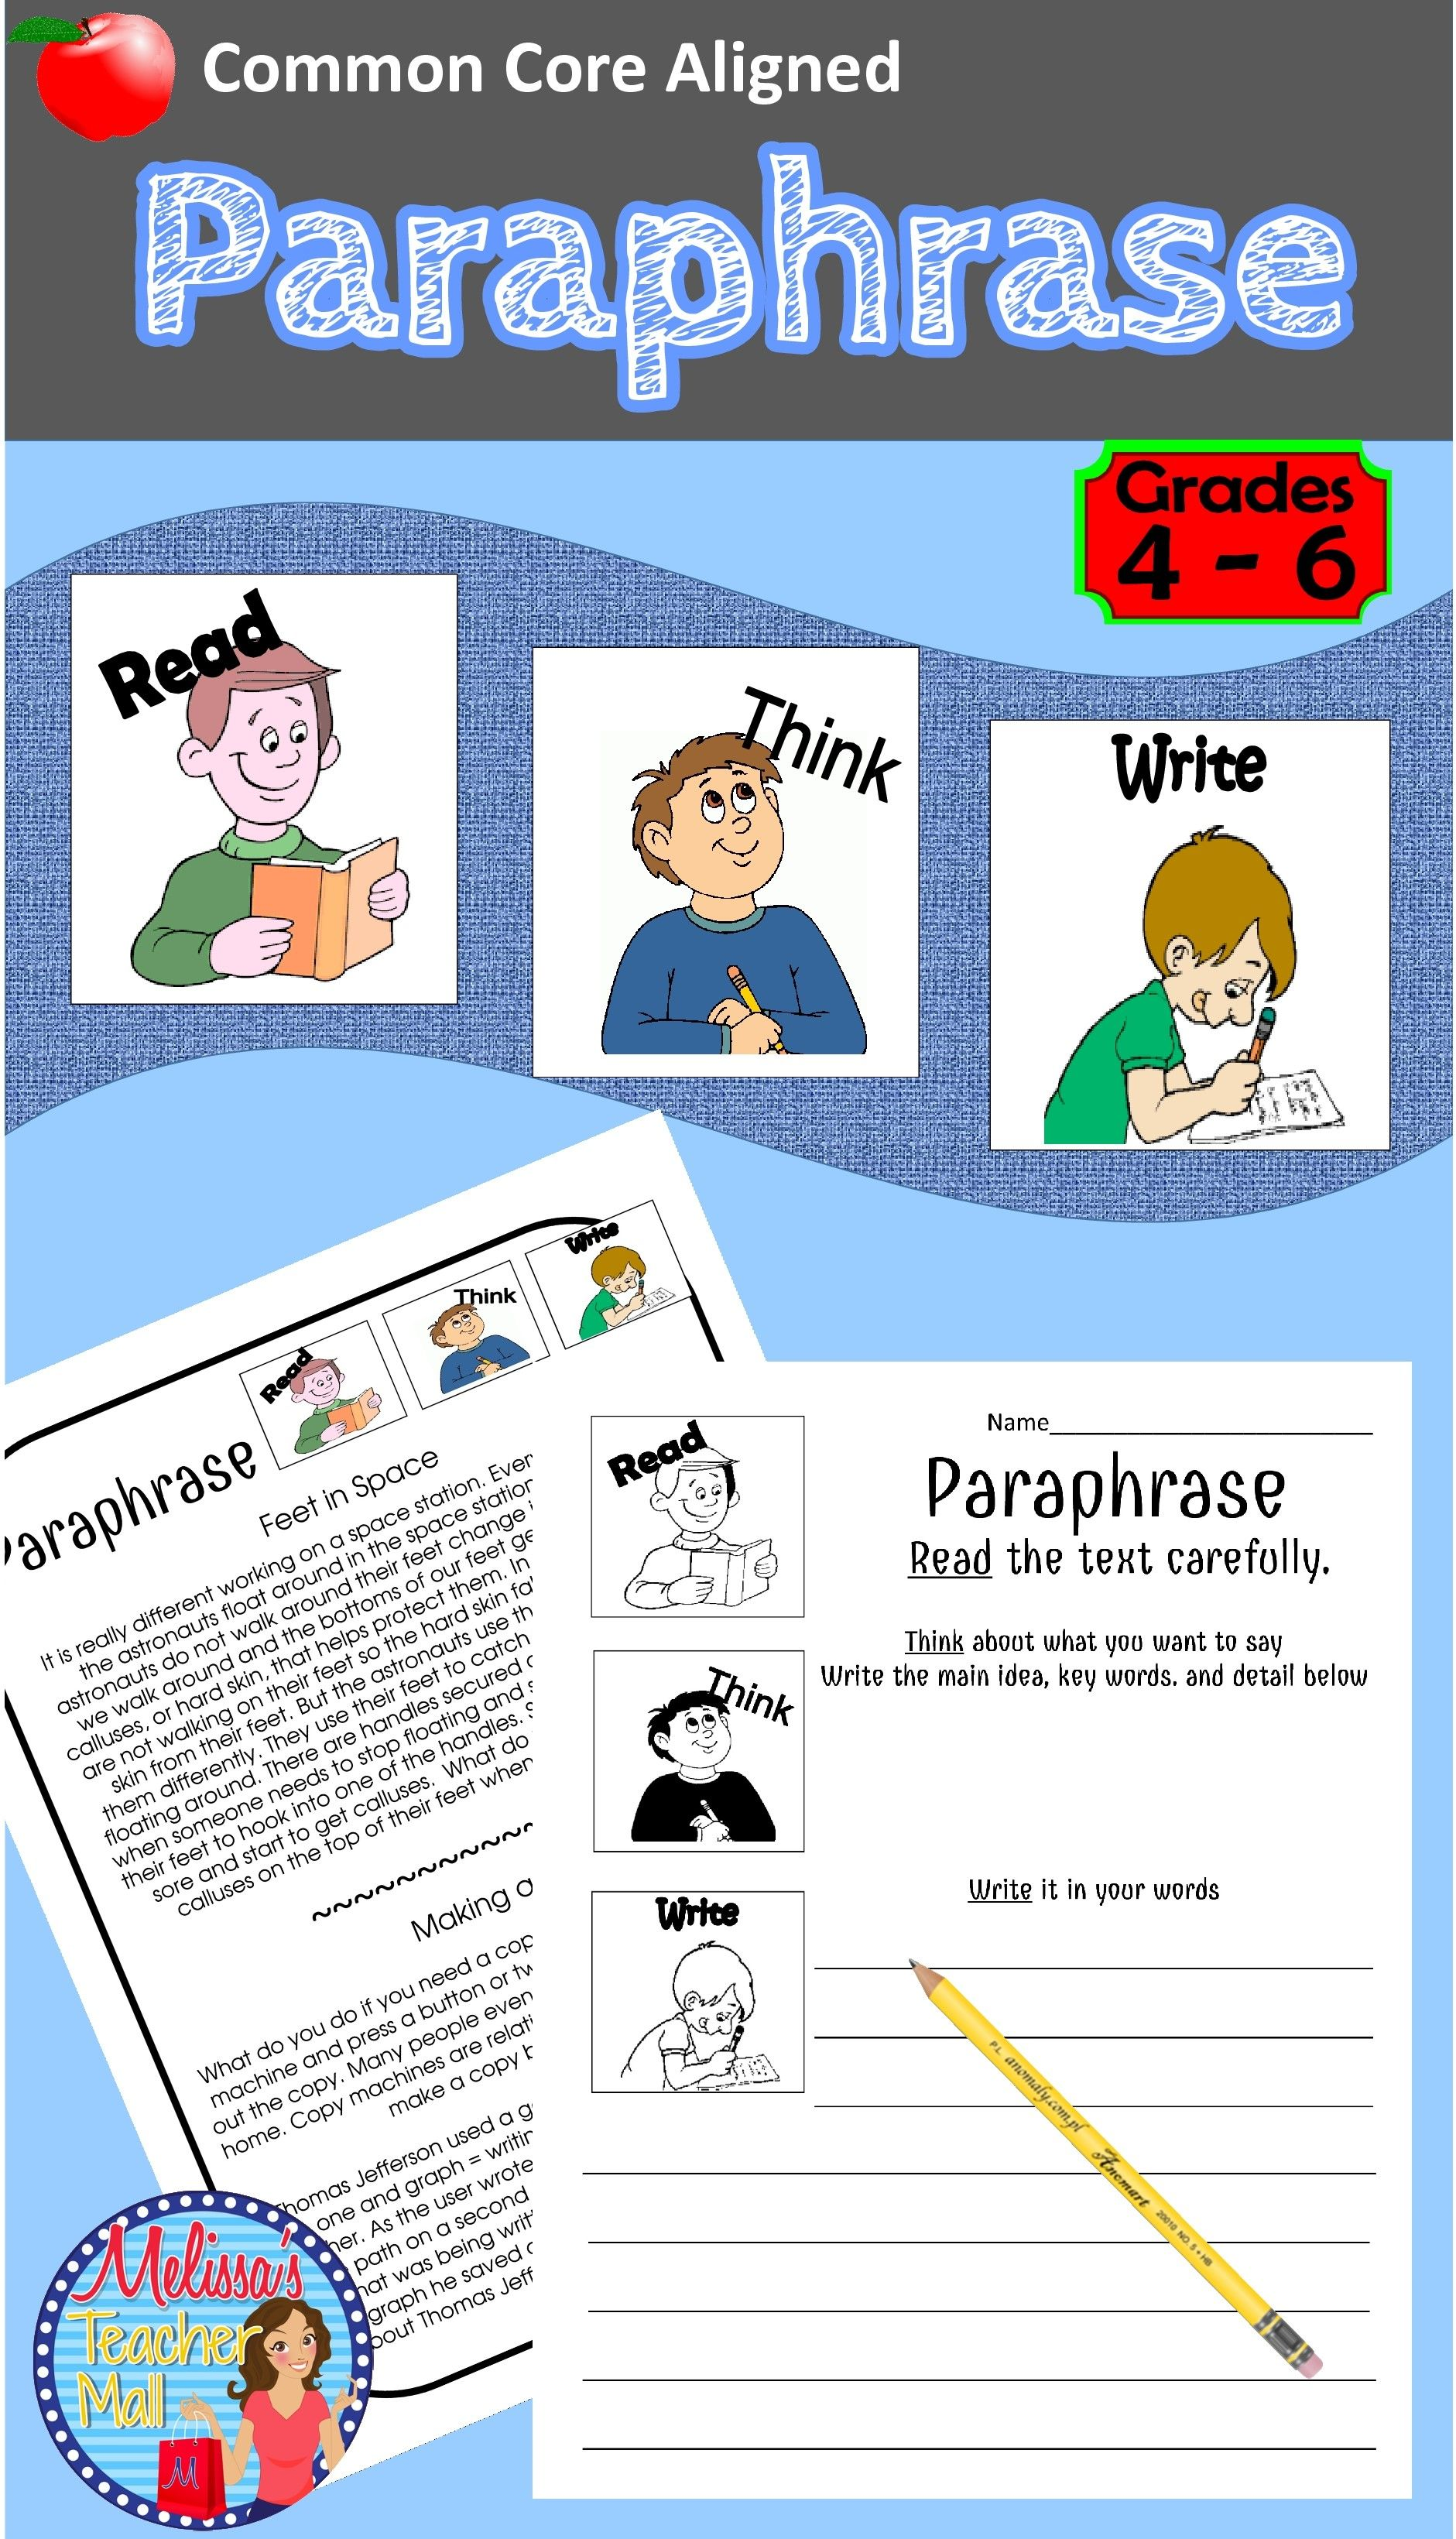 Paraphrase Here I Some Help With The Really Hard Concept Of Paraphrasing Nonfiction Take A Look At Thi Activitie 4th Grade Reading Plagiarism Proper